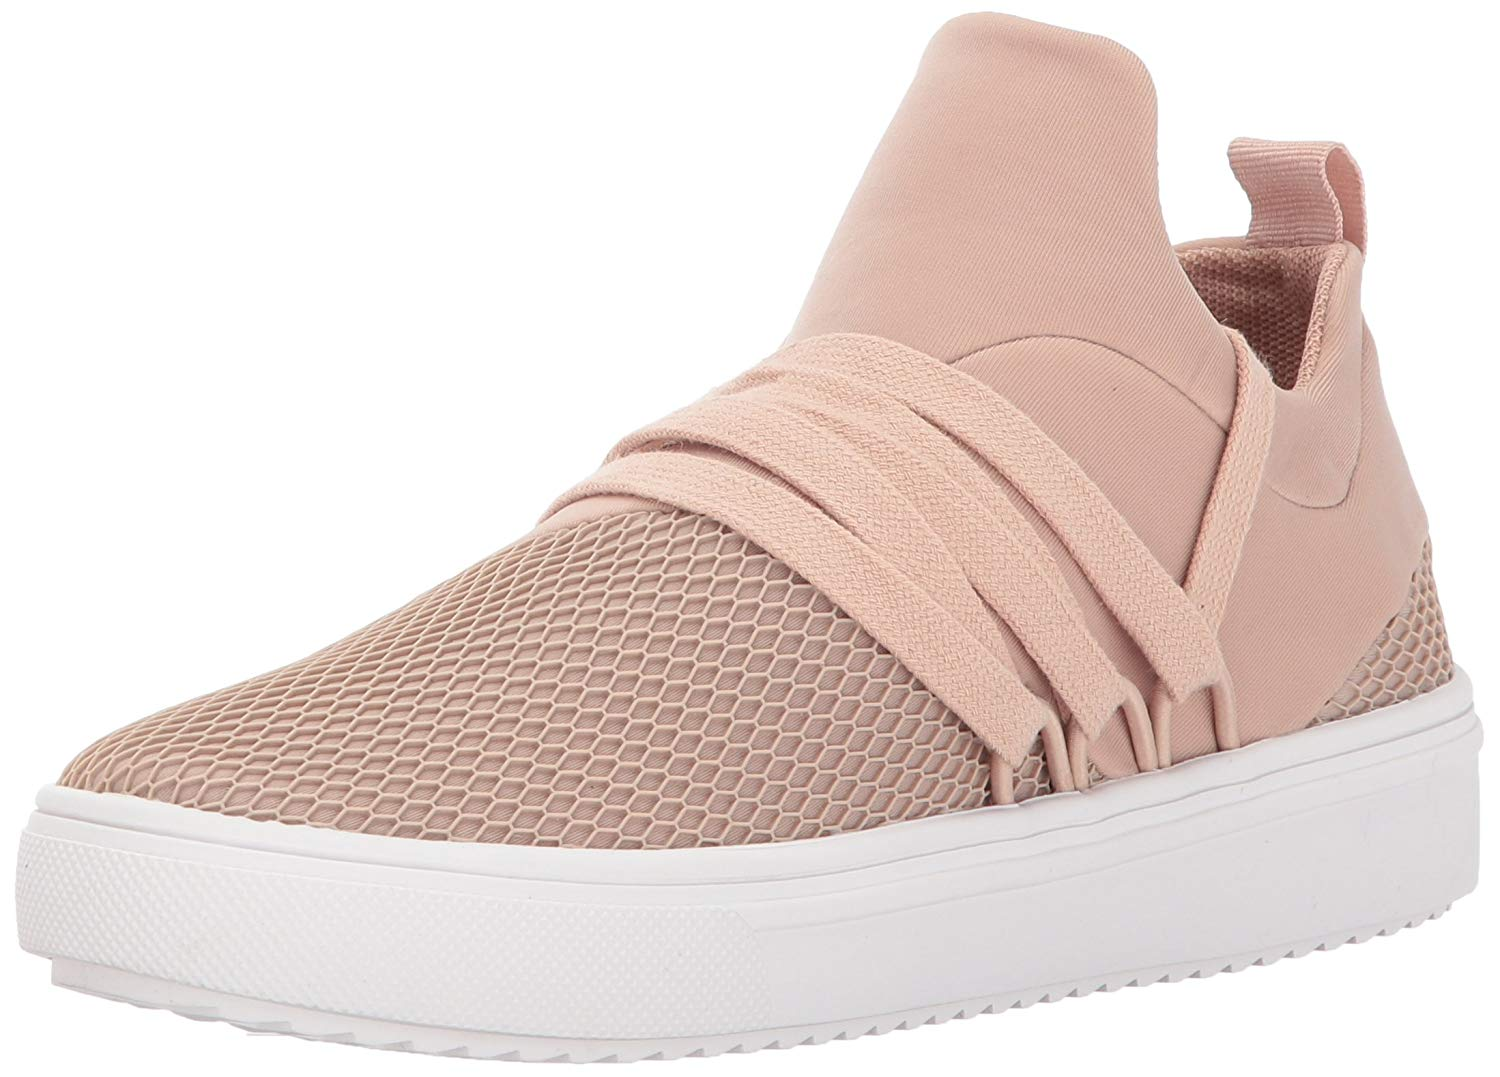 7a915b63941 Steve Madden Womens Lancer Fabric Low Top Lace Up Fashion